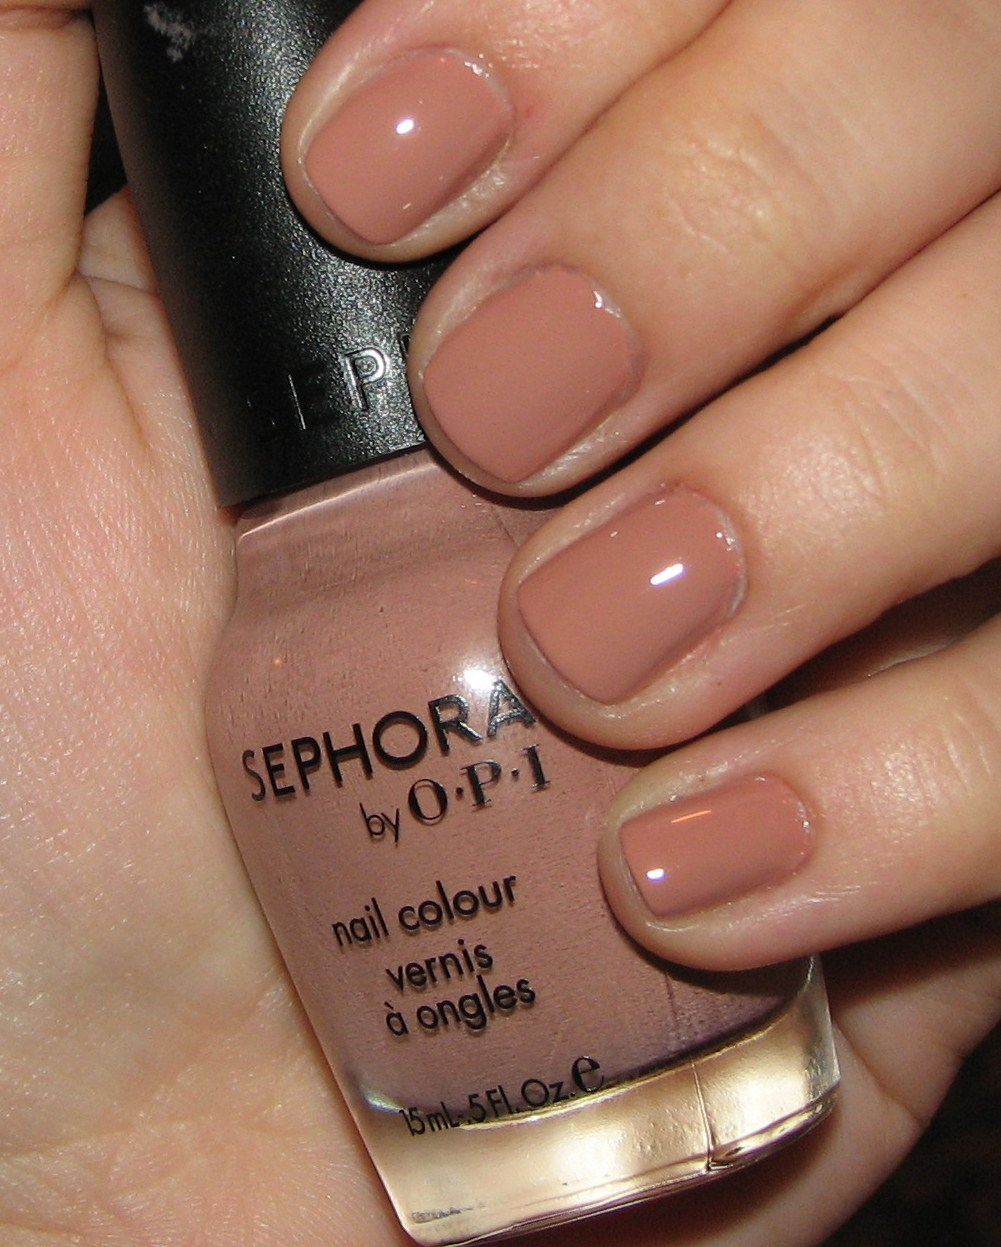 Sephora By Opi Retail For 9 50 Leotard Optional Is Curly Not In Stock On The Site And I Grabbed Last One At My